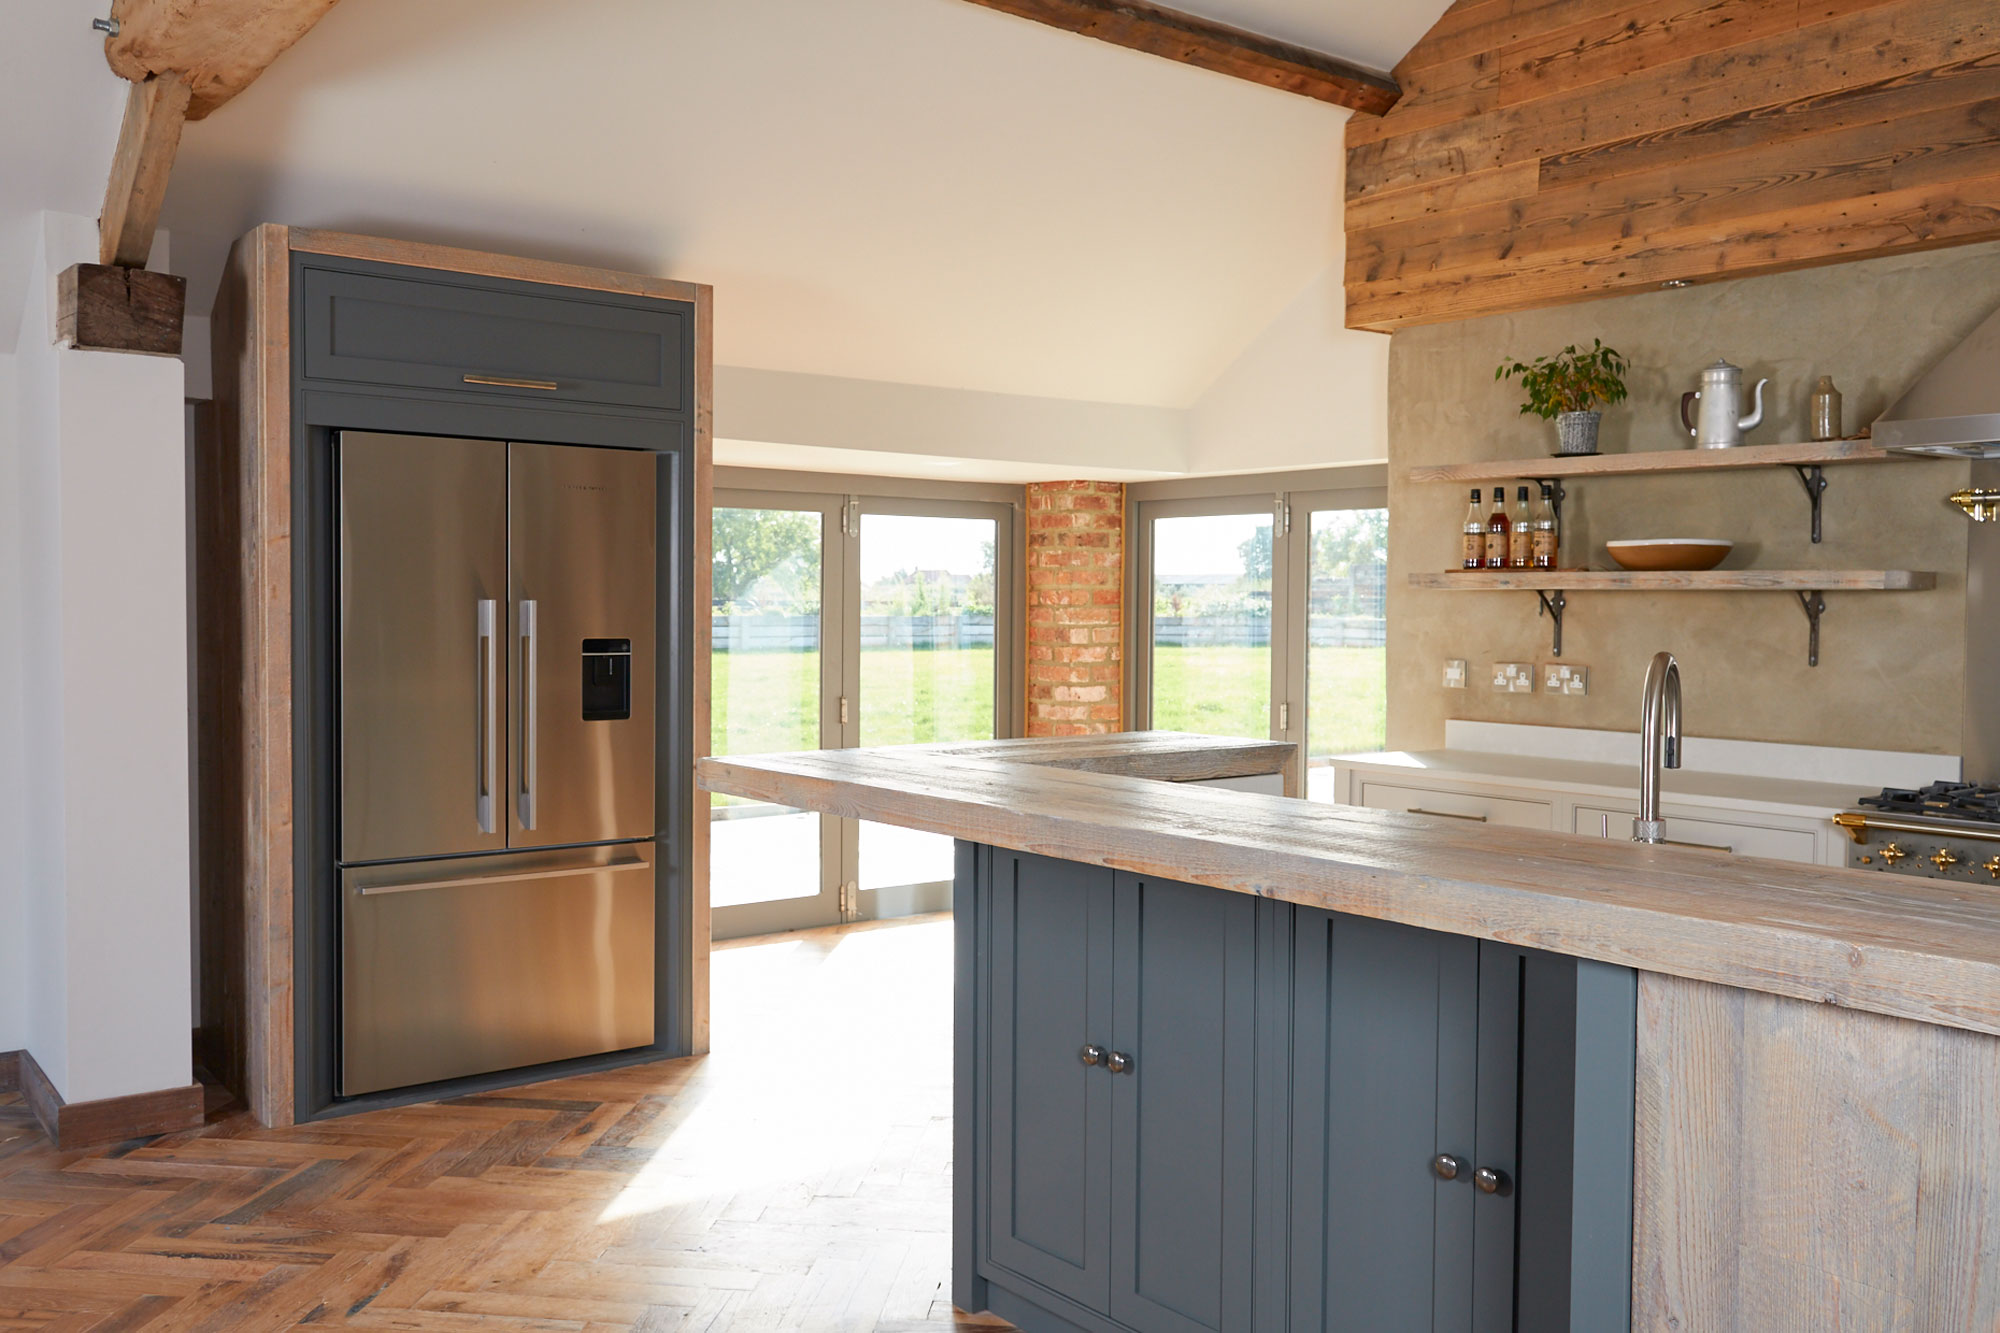 Fisher & Paykel American fridge freezer integrated in to painted unit with rustic oak posts